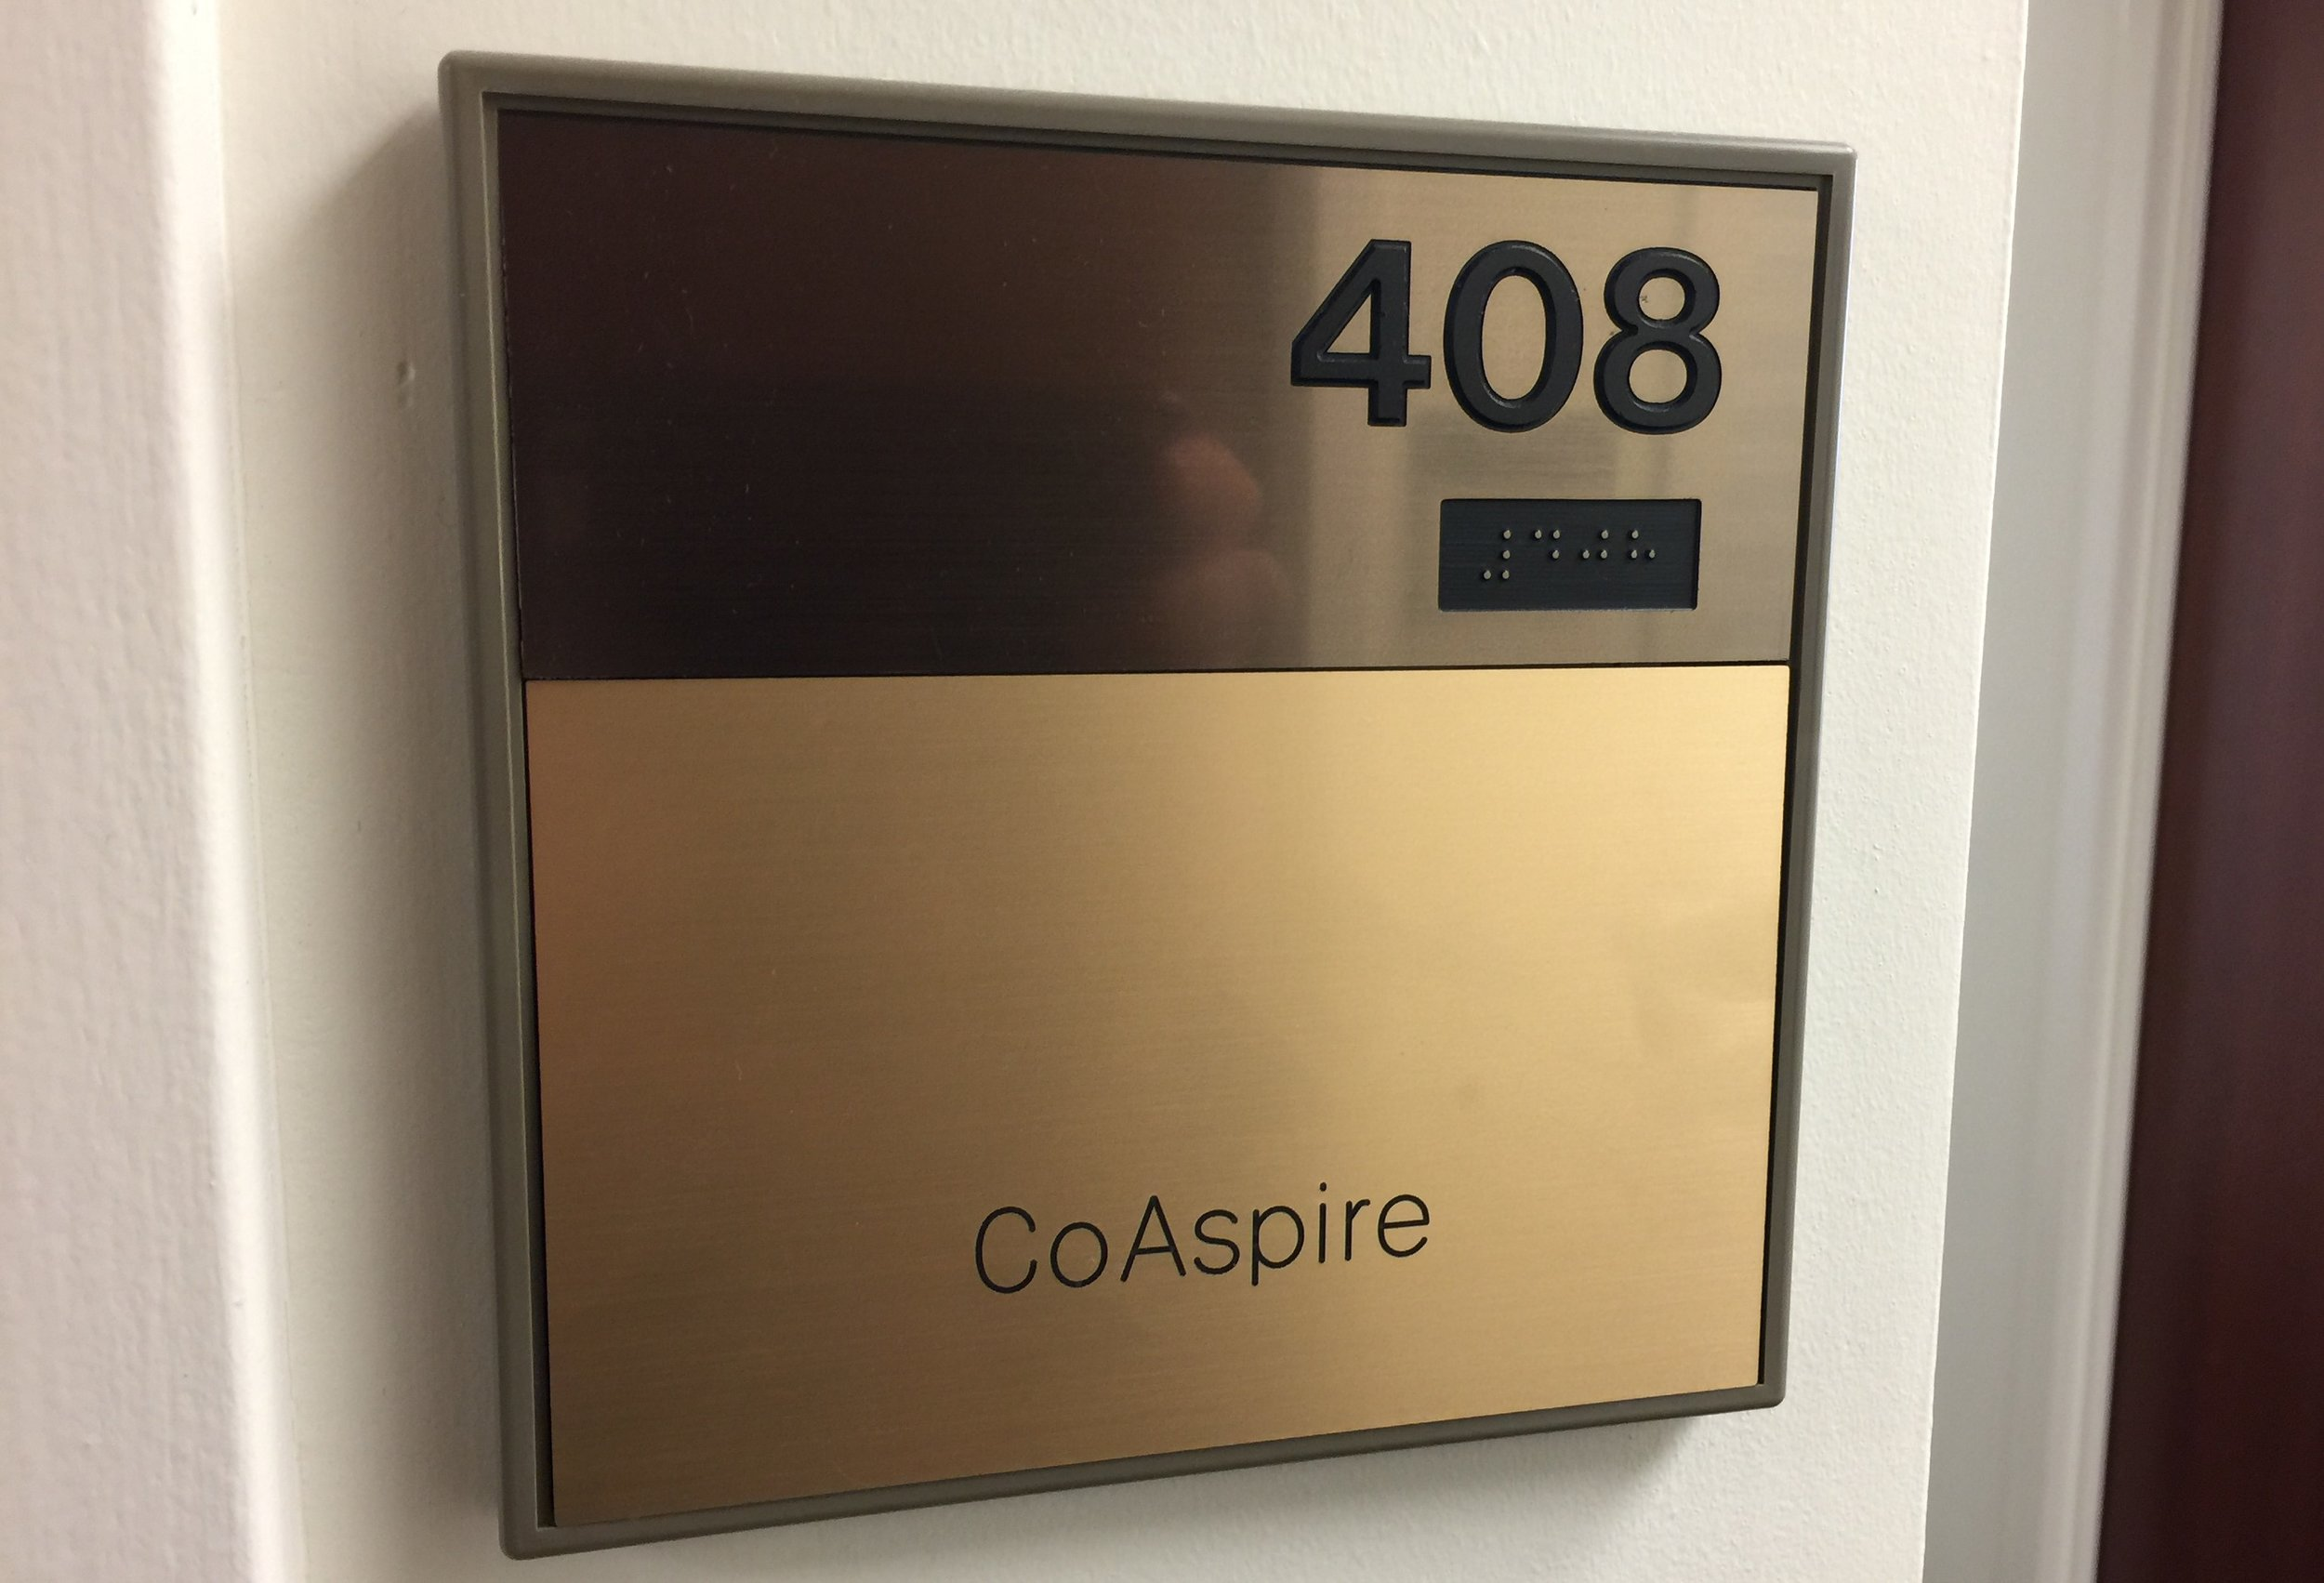 CoAspire HQ's new address is 4031 University Drive, Suite #408, Fairfax, VA 22030